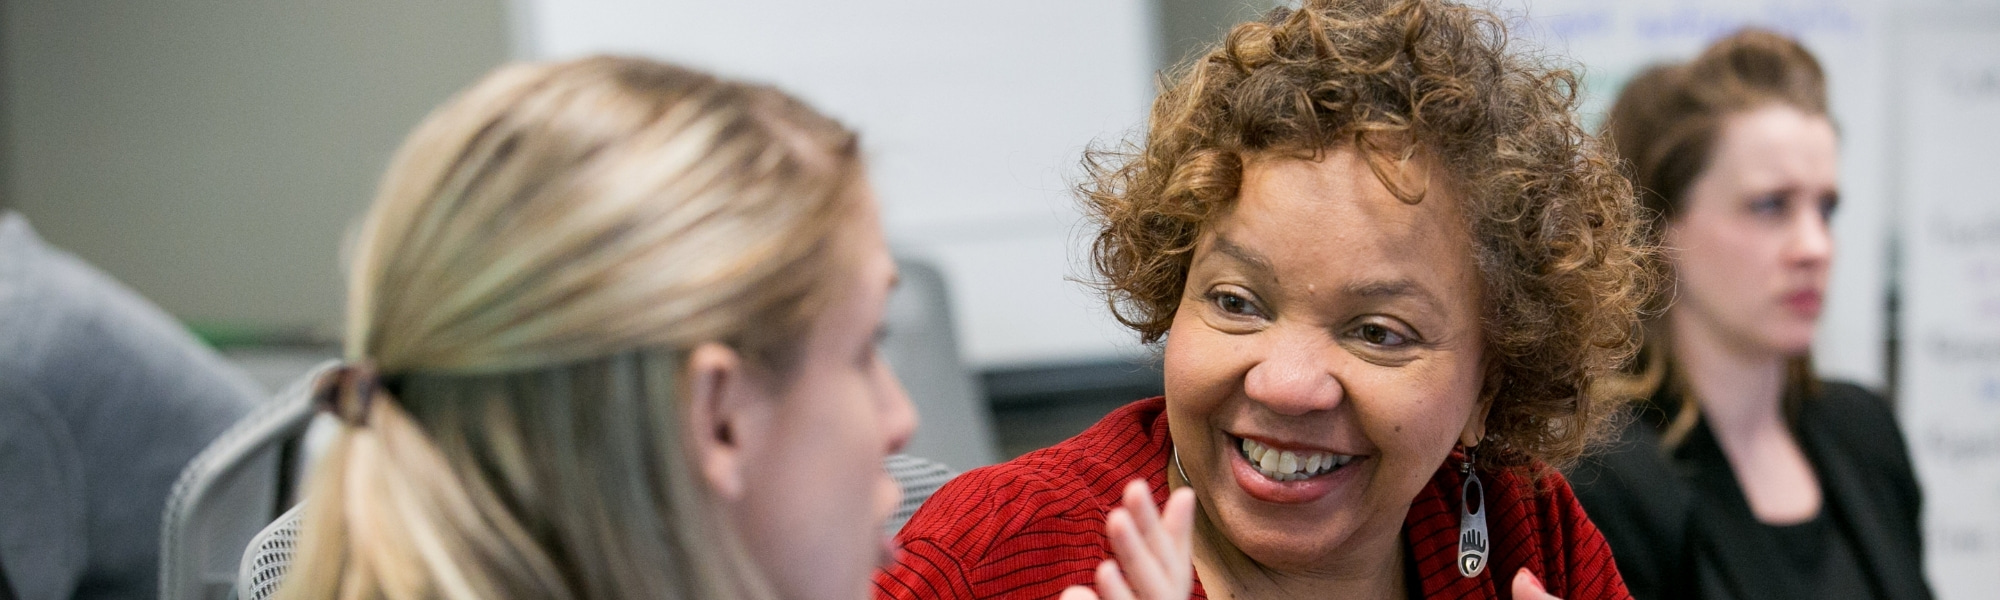 A smiling woman with medium length curly brown hair, medium-dark toned skin, and a red sweater engages in a pleasant conversation.